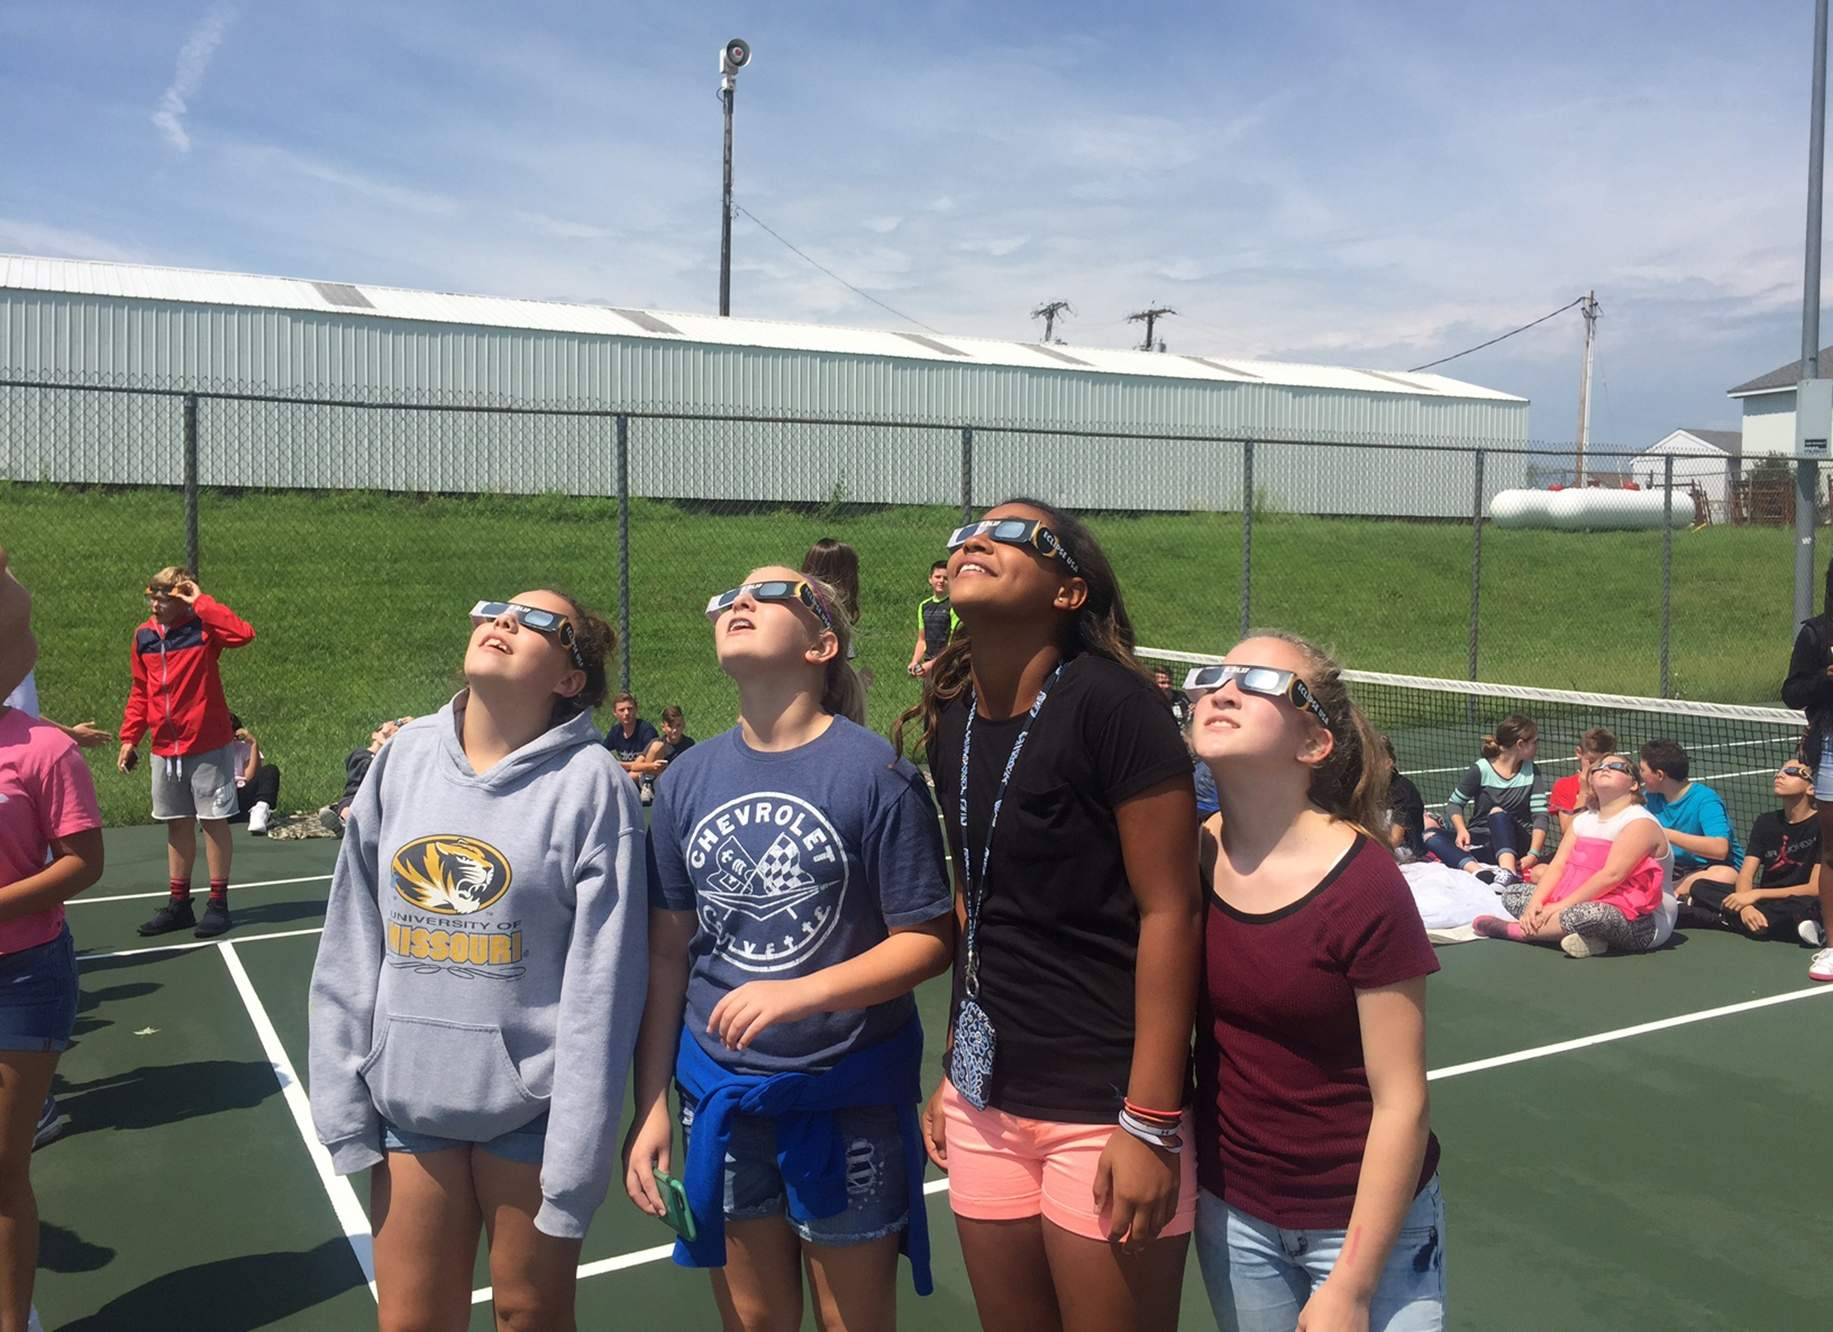 Students at Osage Trail Middle School enjoying the eclipse. [Photo courtesy of Fort Osage School District]